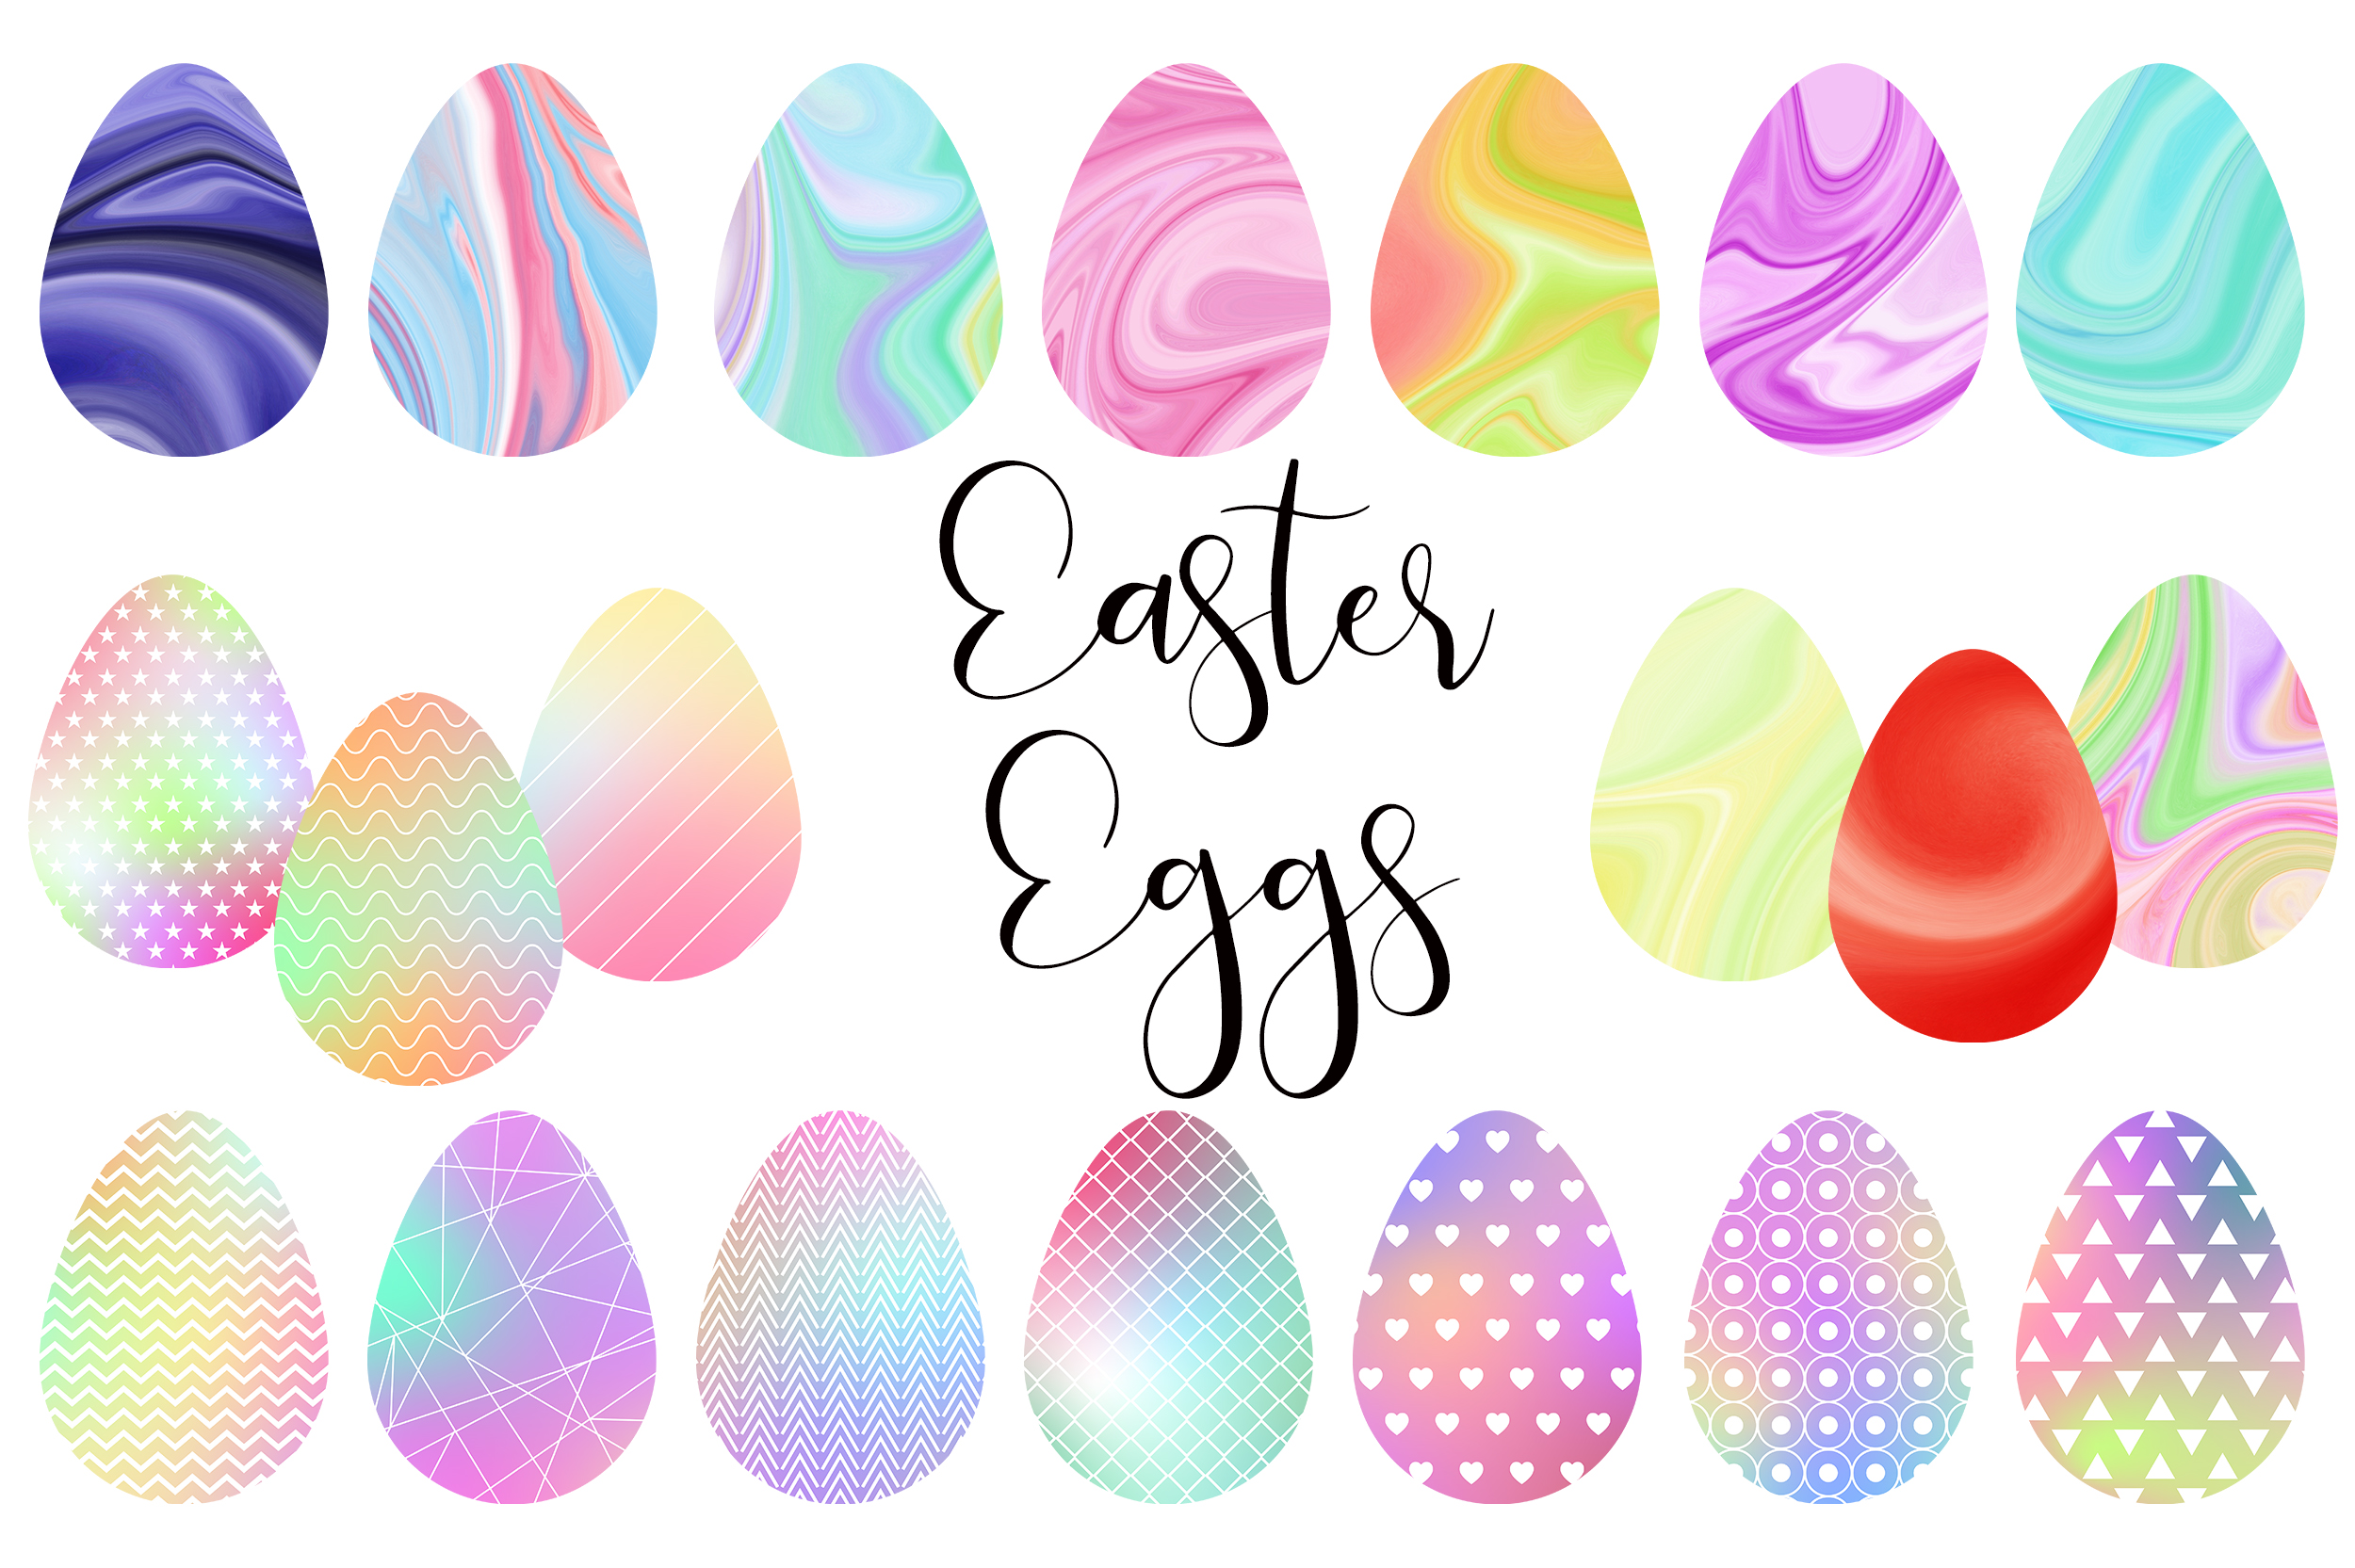 Download Free Easter Eggs Watercolor Clip Art Graphic By Pinkpearly Creative for Cricut Explore, Silhouette and other cutting machines.